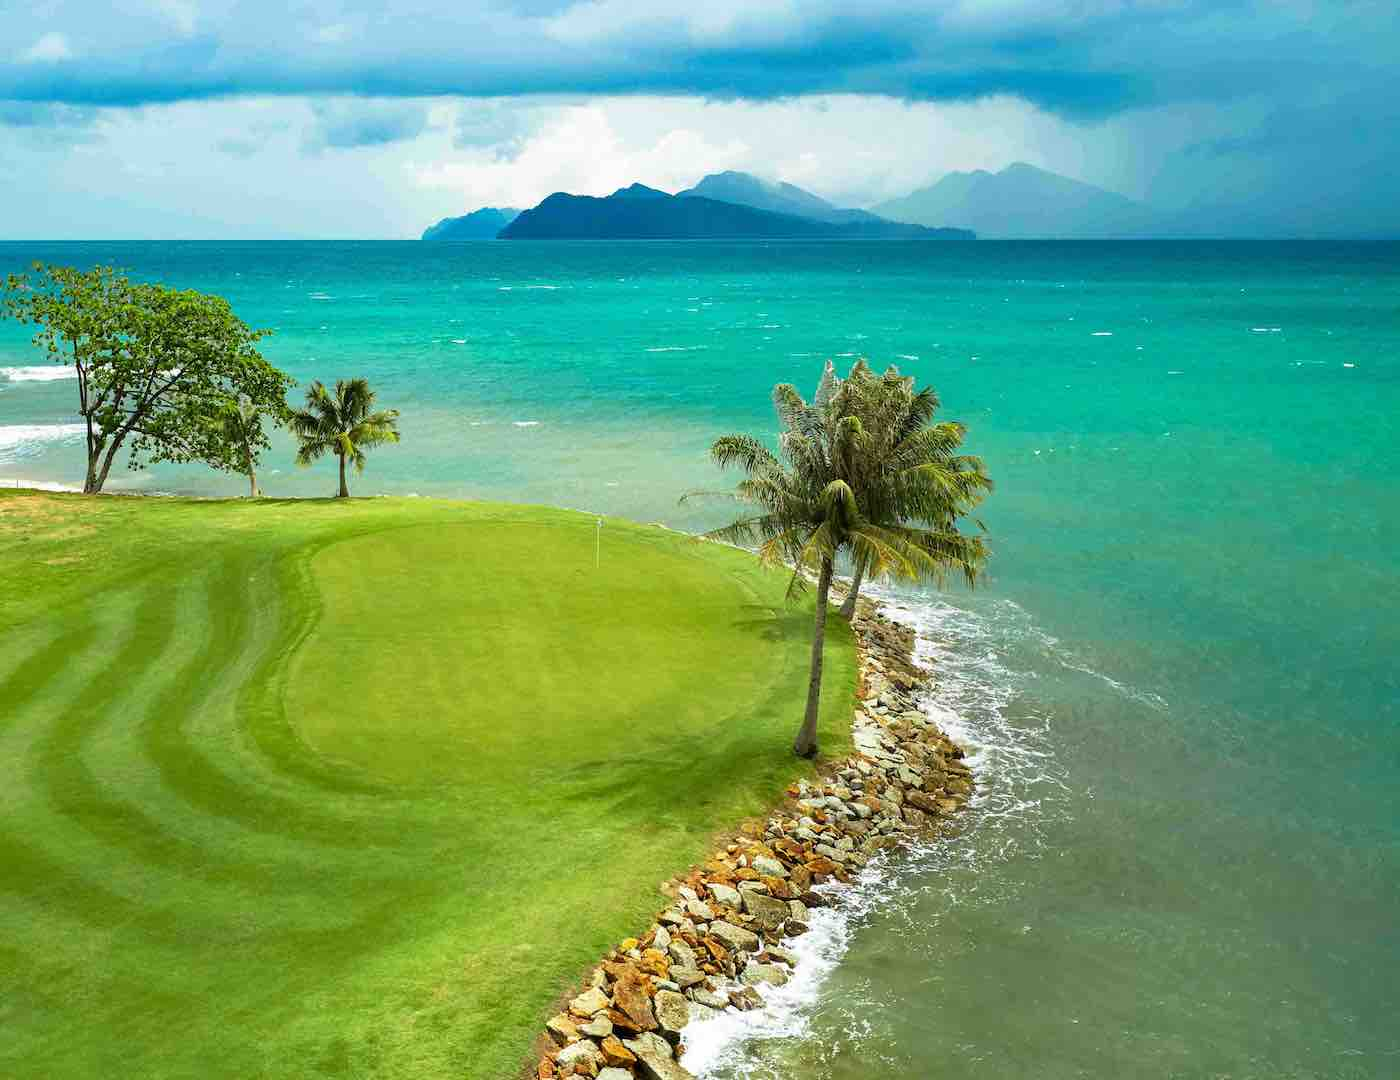 GolfPorn special from the Els Club Teluk Datai